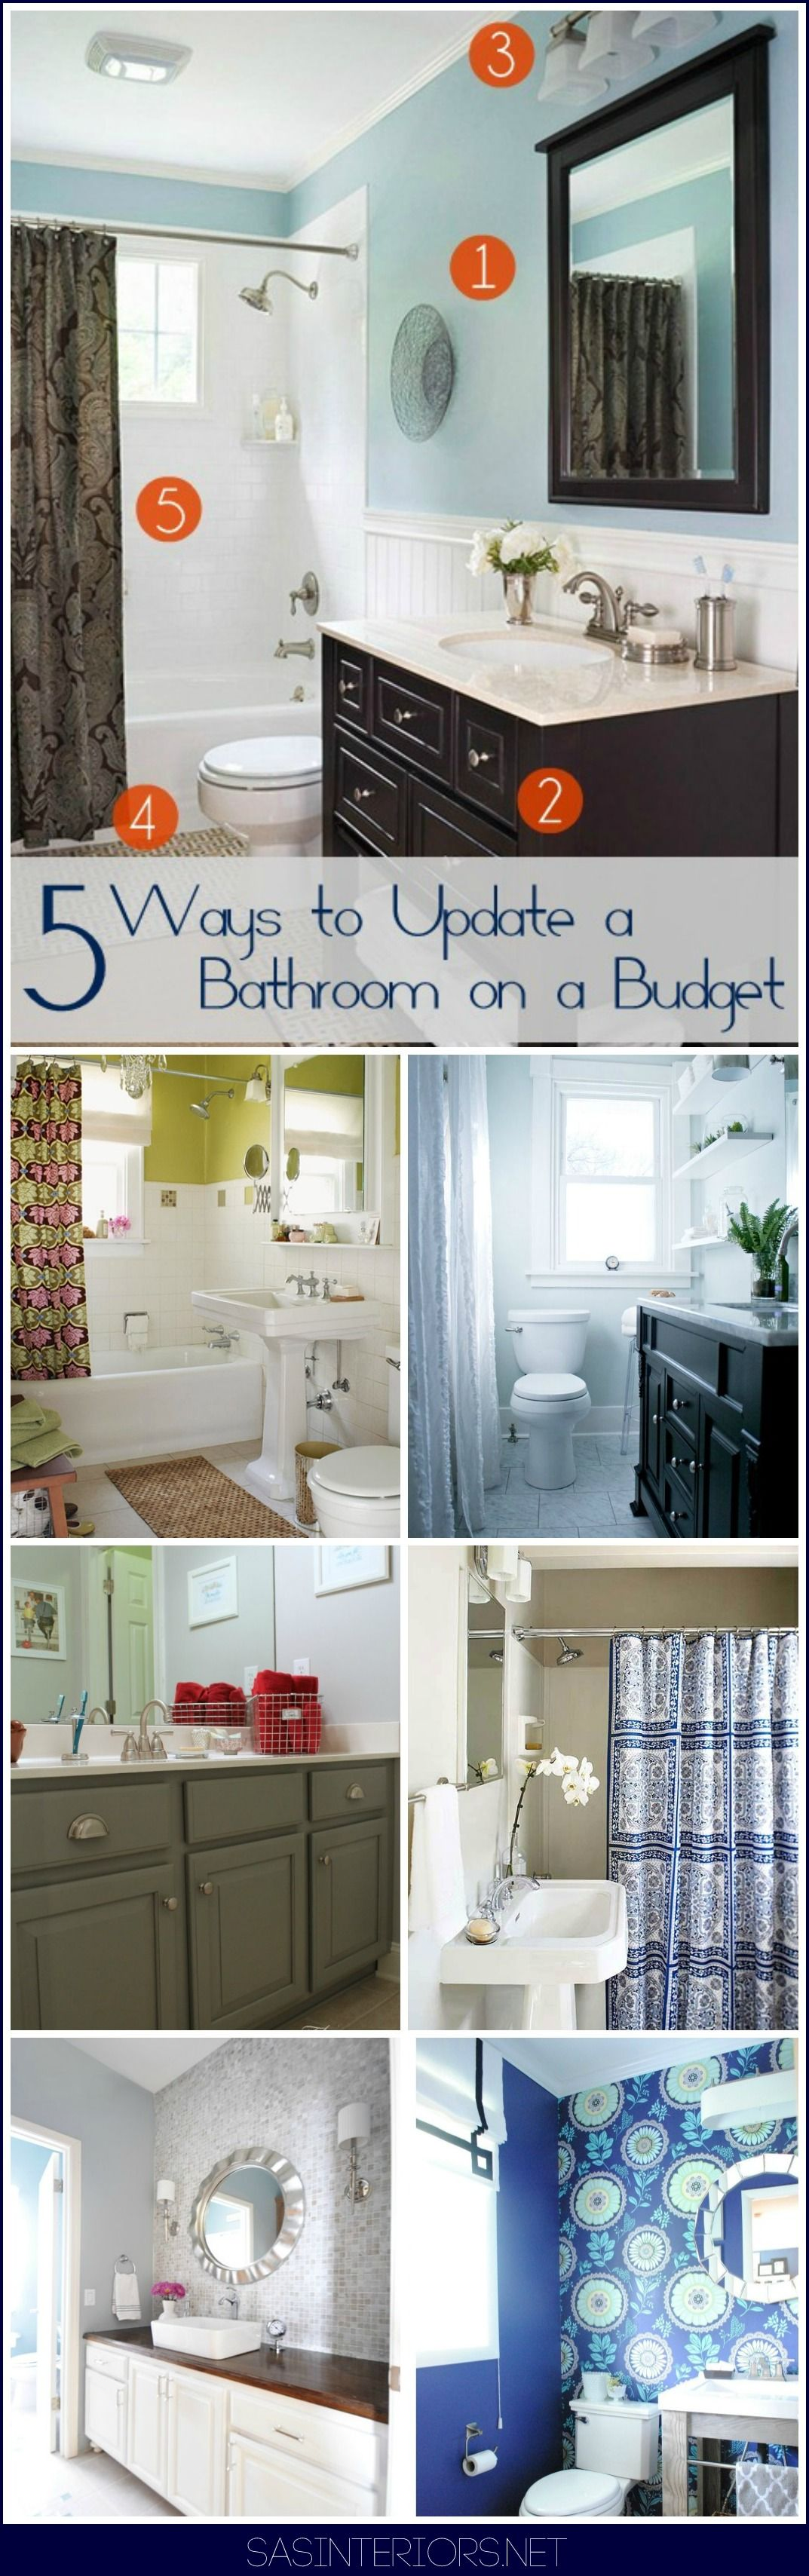 5 Ways to Upgrade a Bathroom on a Budget: Don't neglect a needed bathroom revamp because of cost + no-experience. Instead, embrace what you have and revamp the layers of the existing!